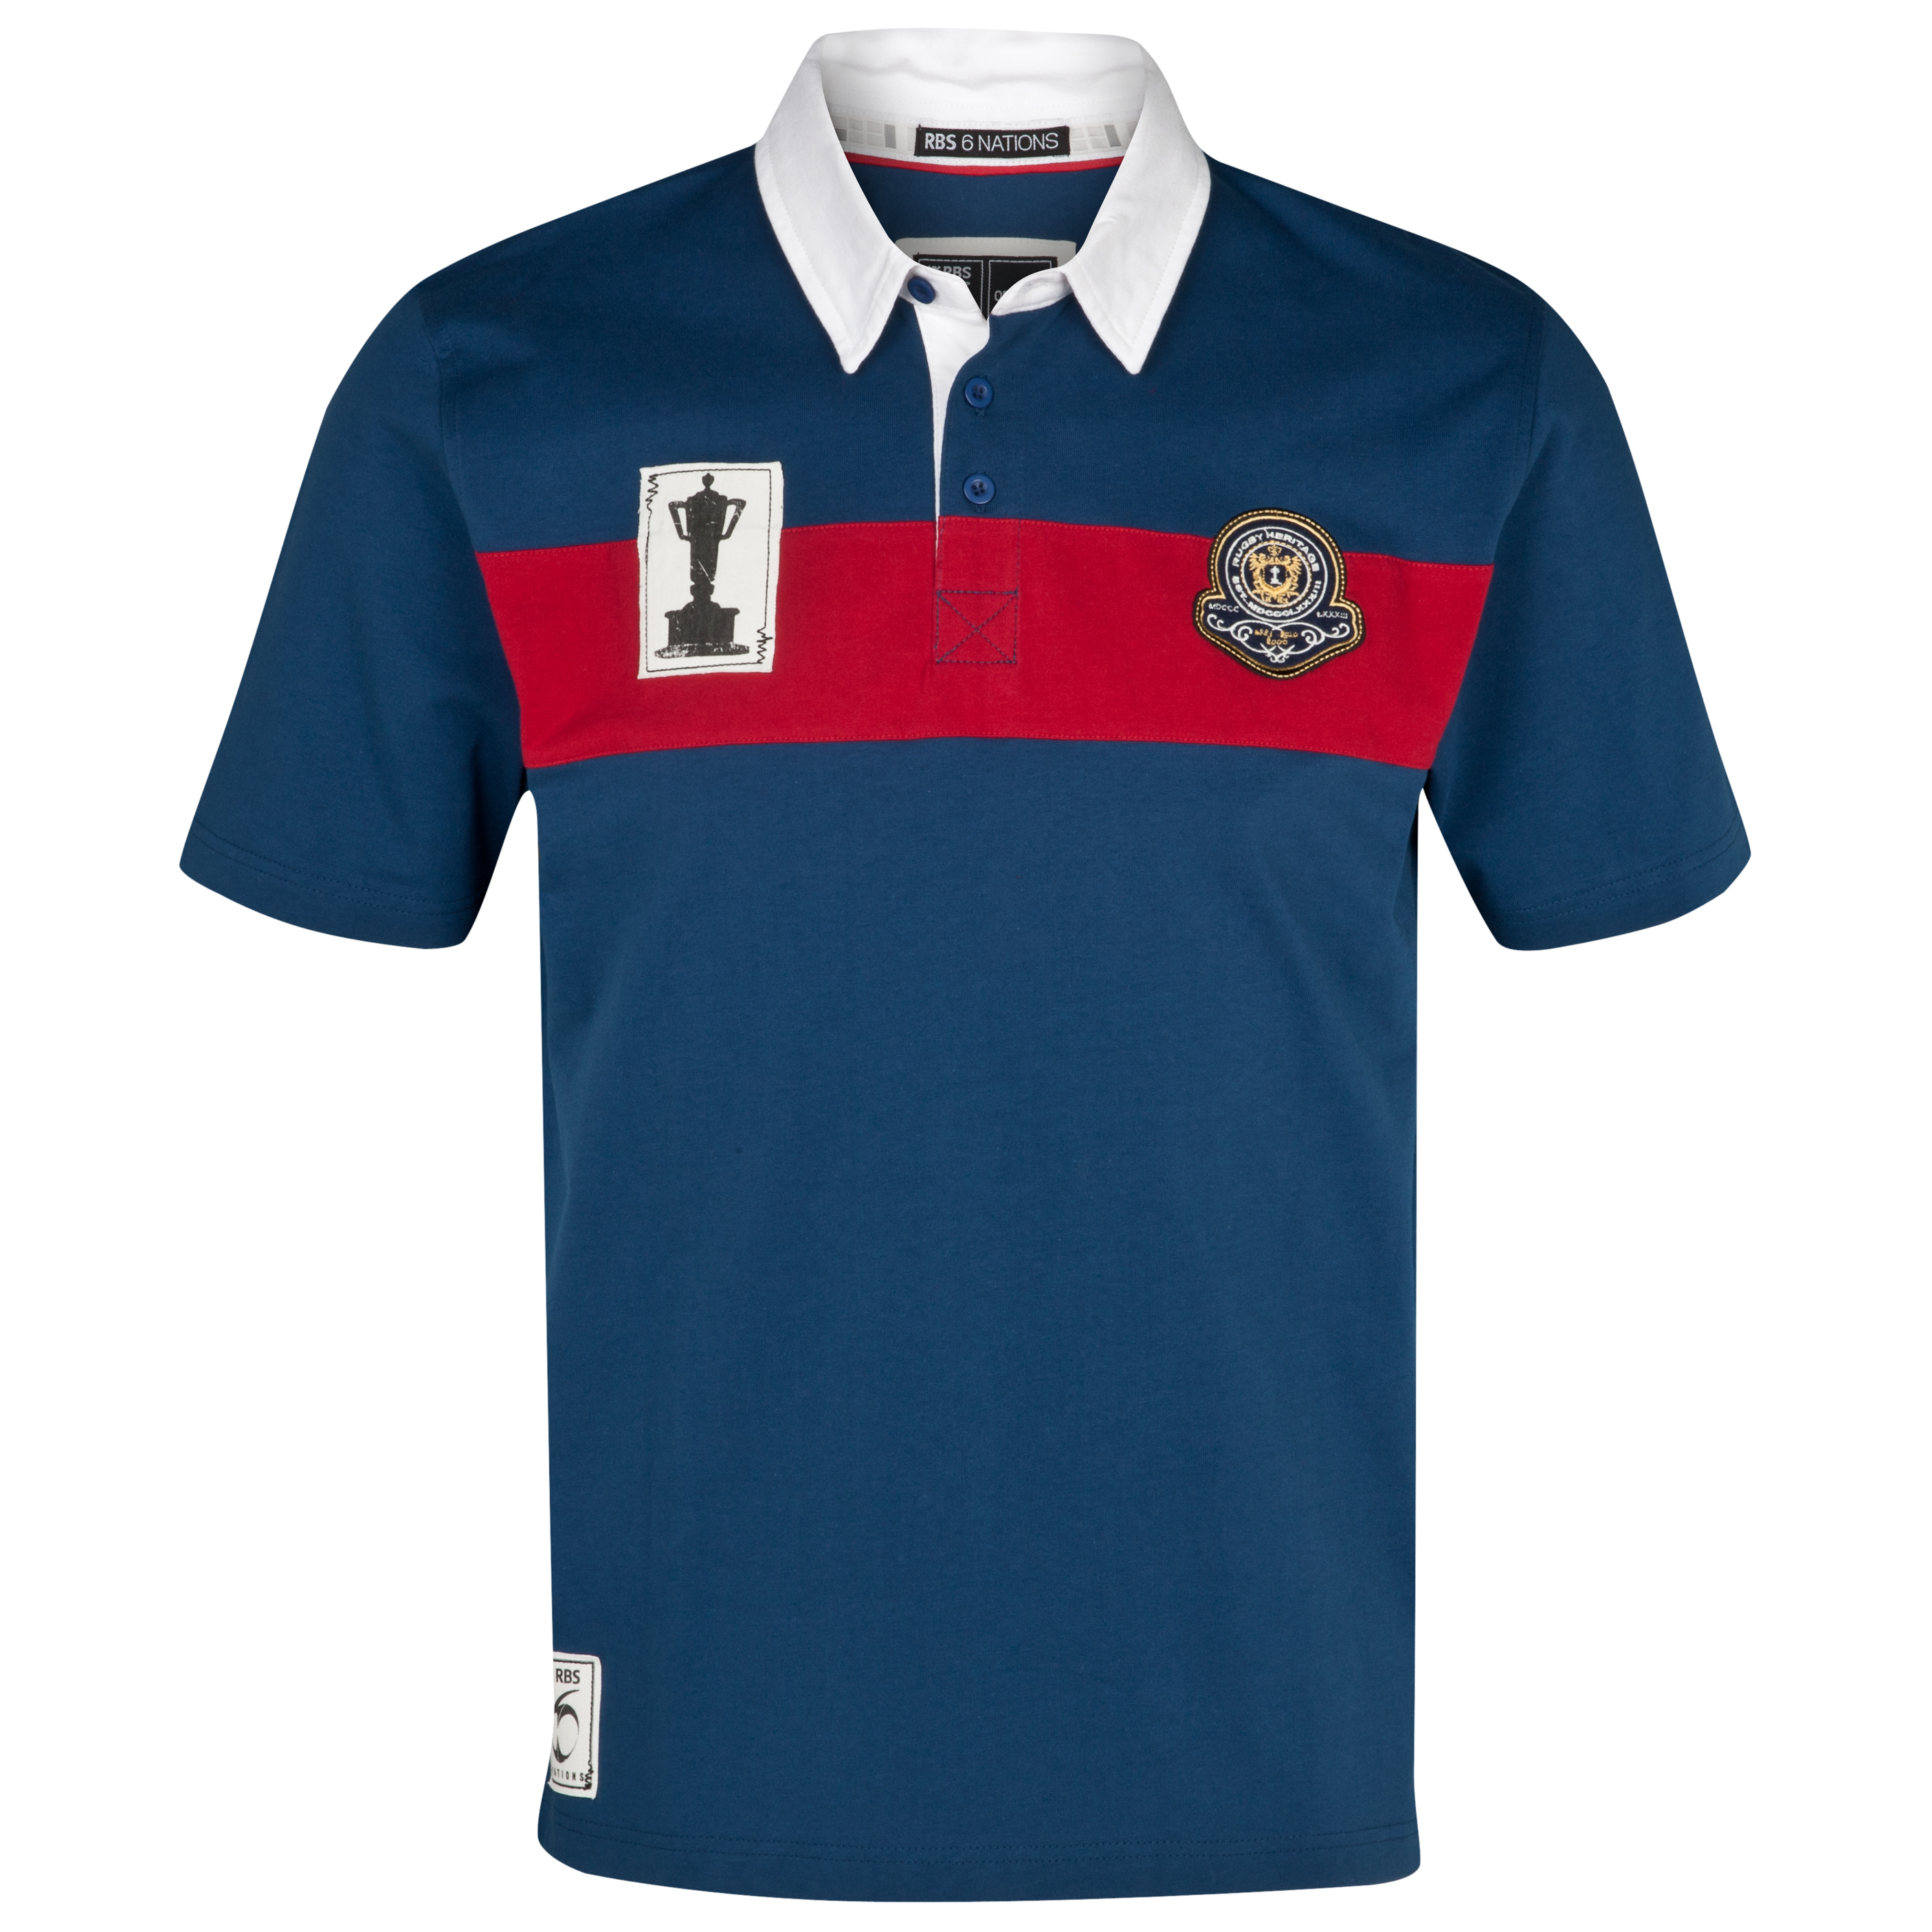 England RBS 6 Nations Heritage Short Sleeved Rugby Shirt - Navy/Red